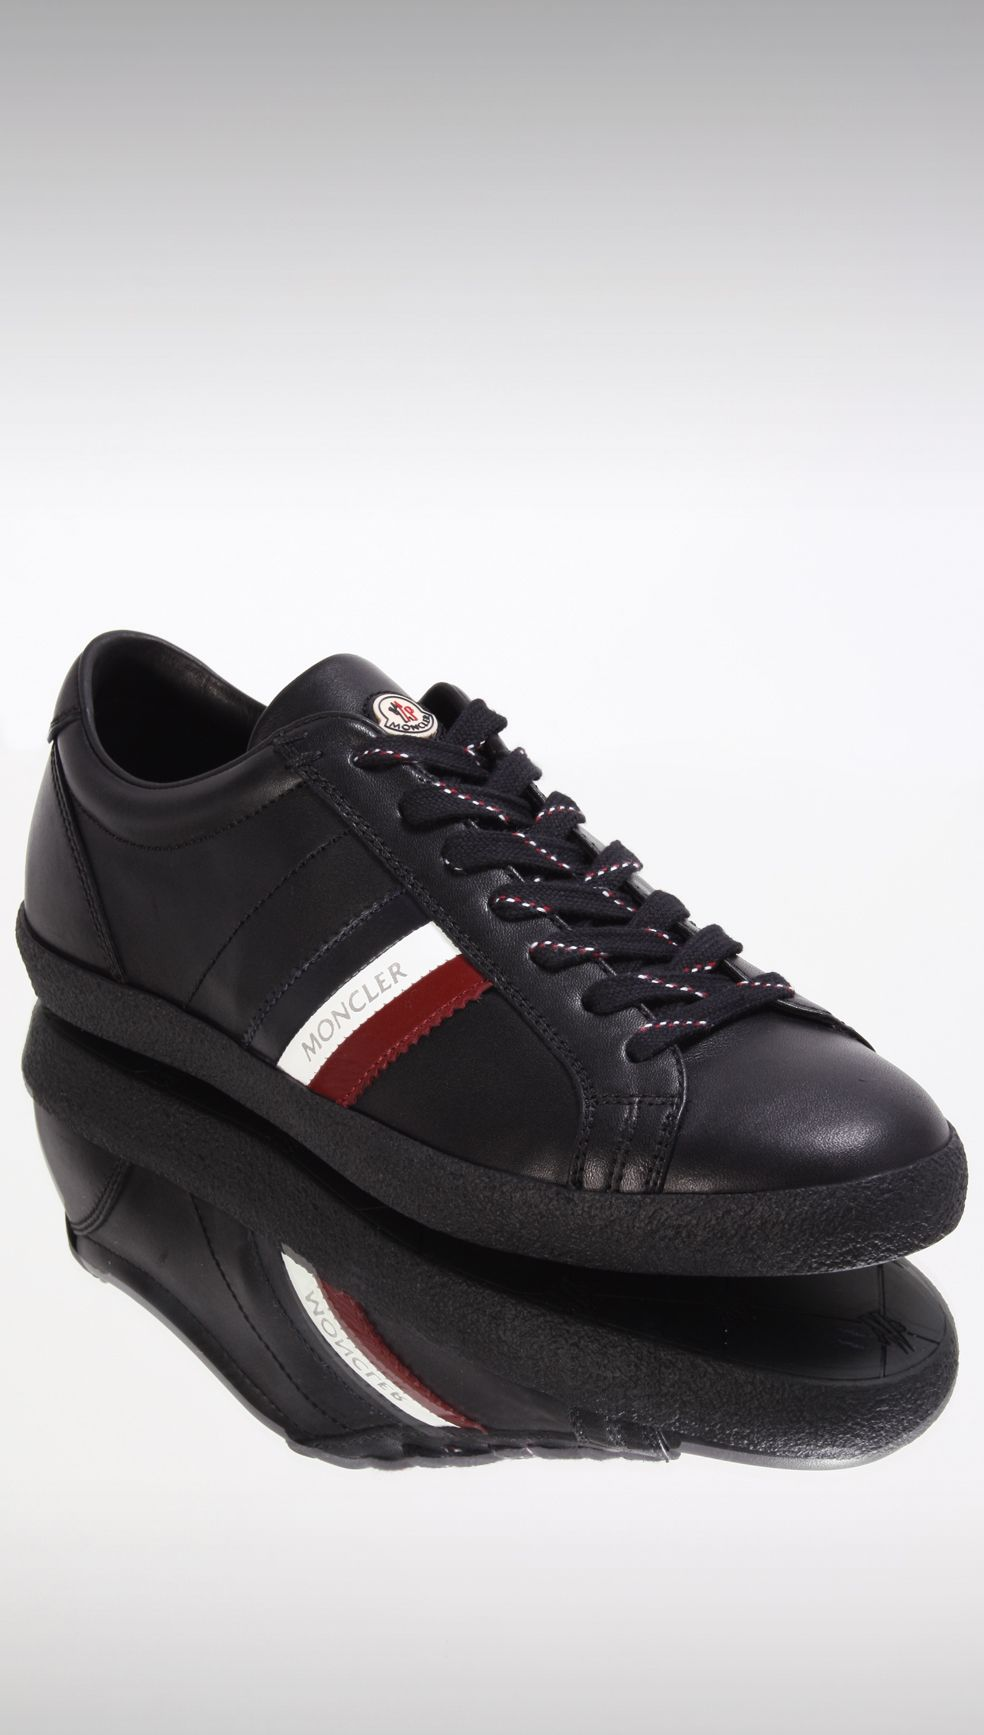 Moncler Monaco Trainers - Black £230 http://www.philipbrownemenswear.co